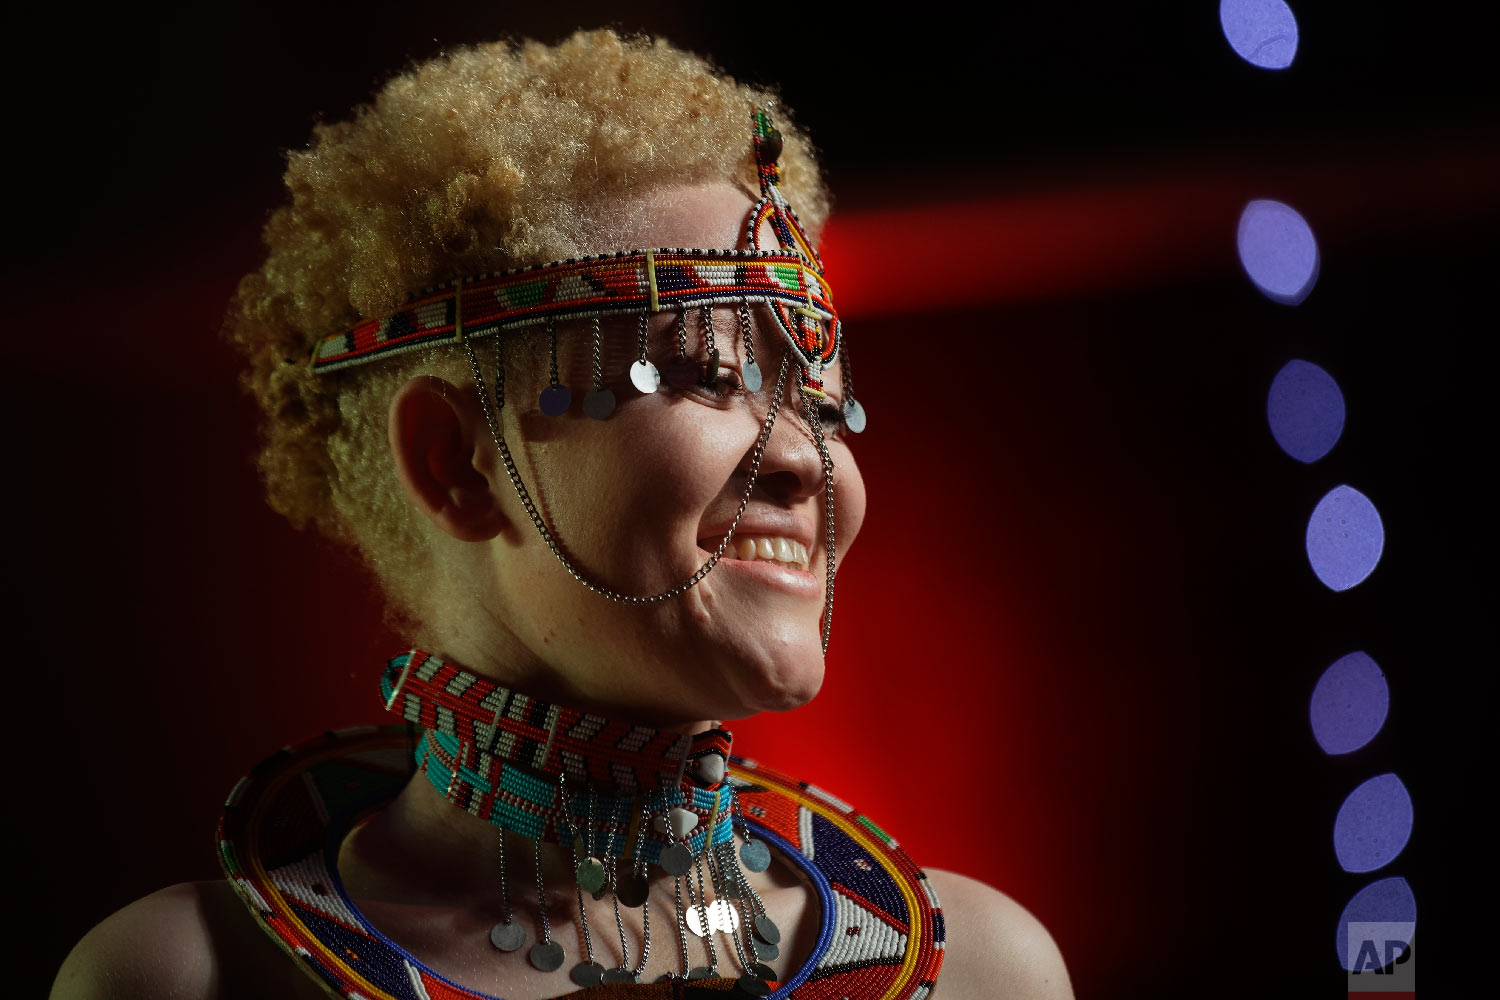 Kenyan contestant Lucianah Nyawira, 21, wears a traditional costume as she performs in the Mr. & Miss Albinism East Africa contest, organized by the Albinism Society of Kenya, in Nairobi, Kenya, Nov. 30, 2018. (AP Photo/Ben Curtis)